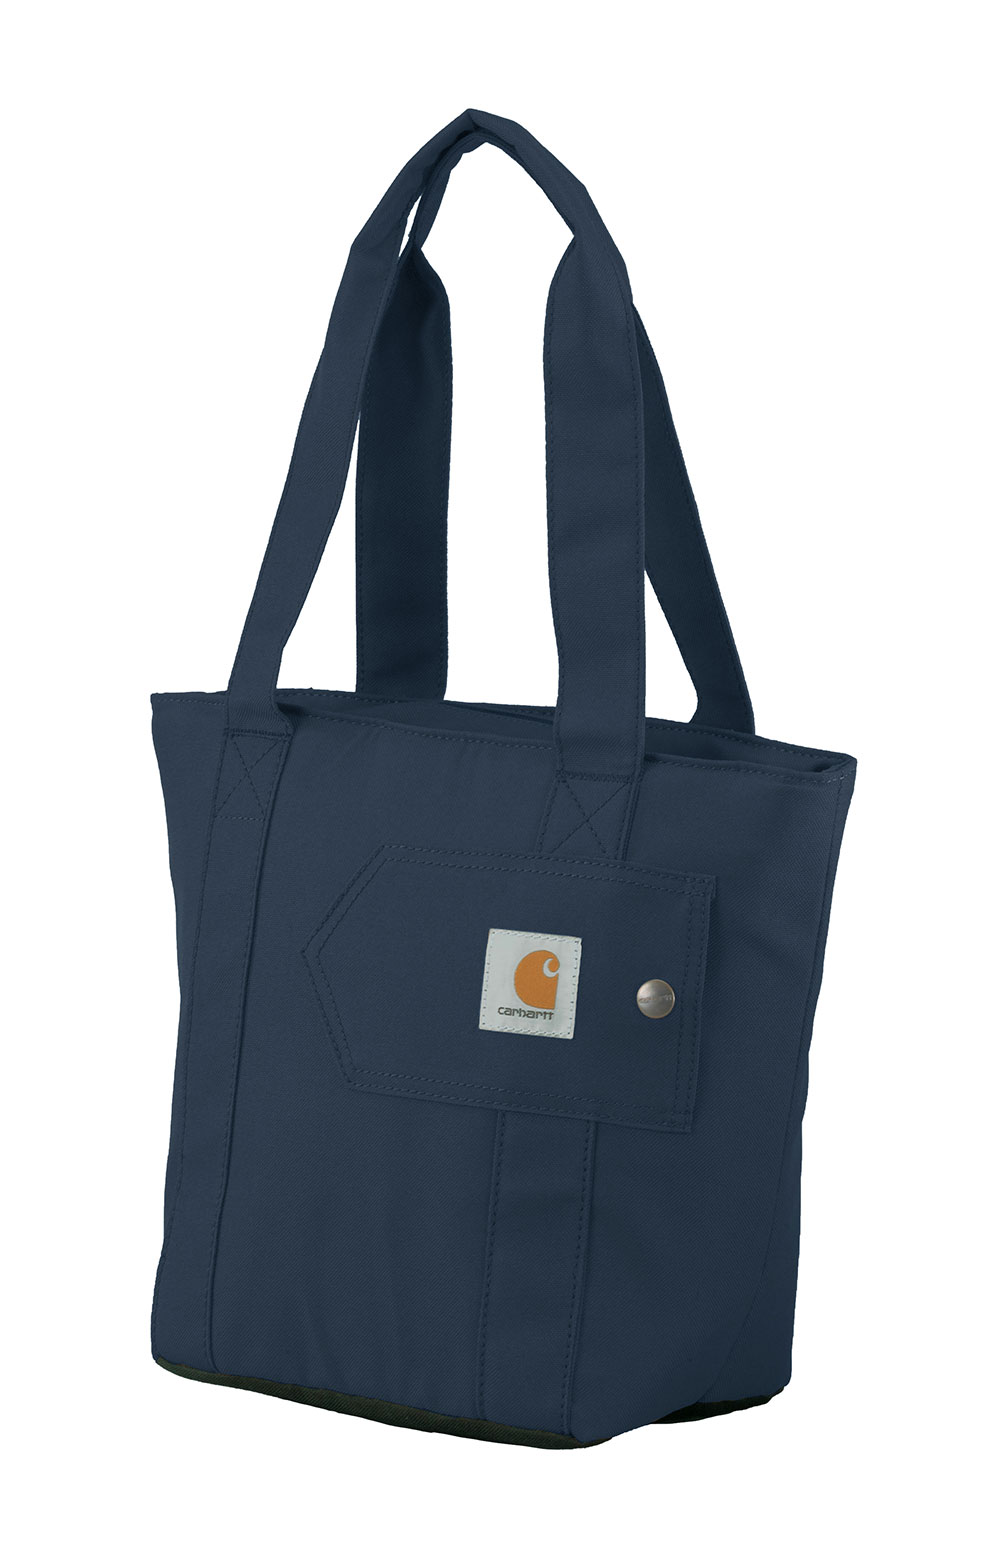 Lunch Tote Bag - Navy 3